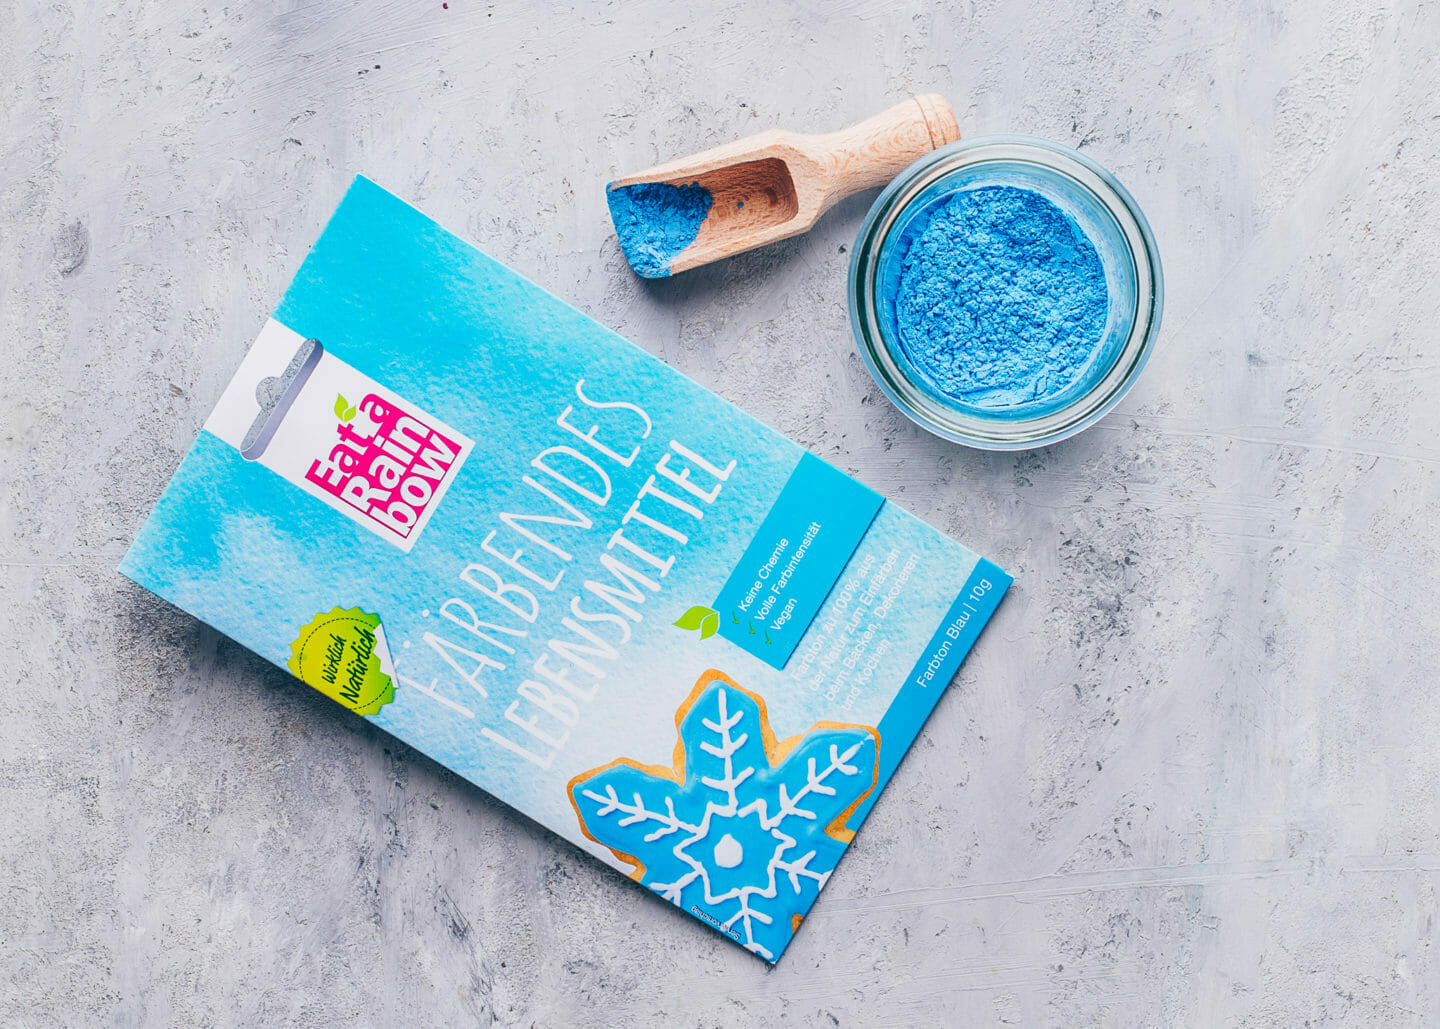 Superfood Pulver, Spirulina blau, vegan